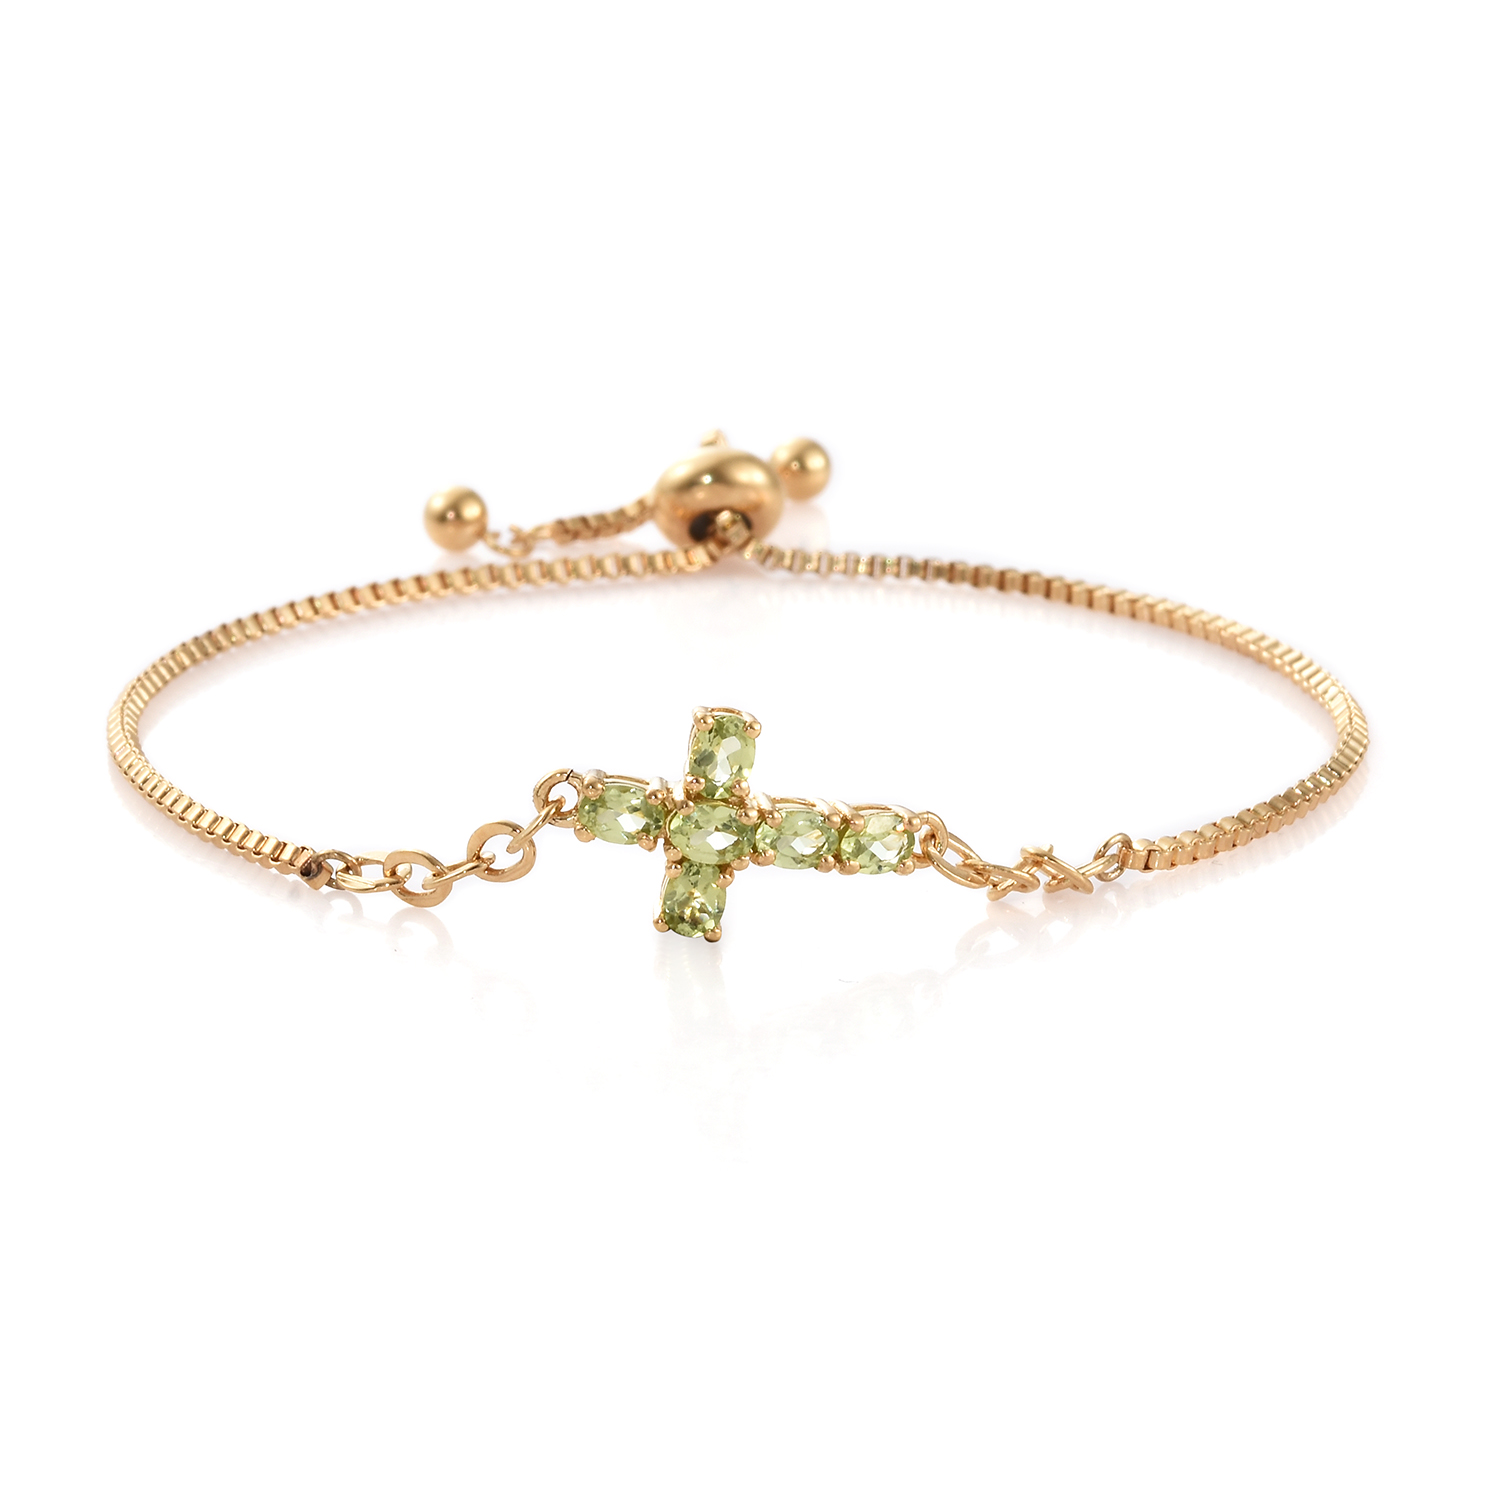 KARIS - Hebei Peridot Side Cross Bolo Bracelet in ION Plated 18K YG Brass & ION Plated YG Stainless Steel (Adjustable) 1.10 ctw